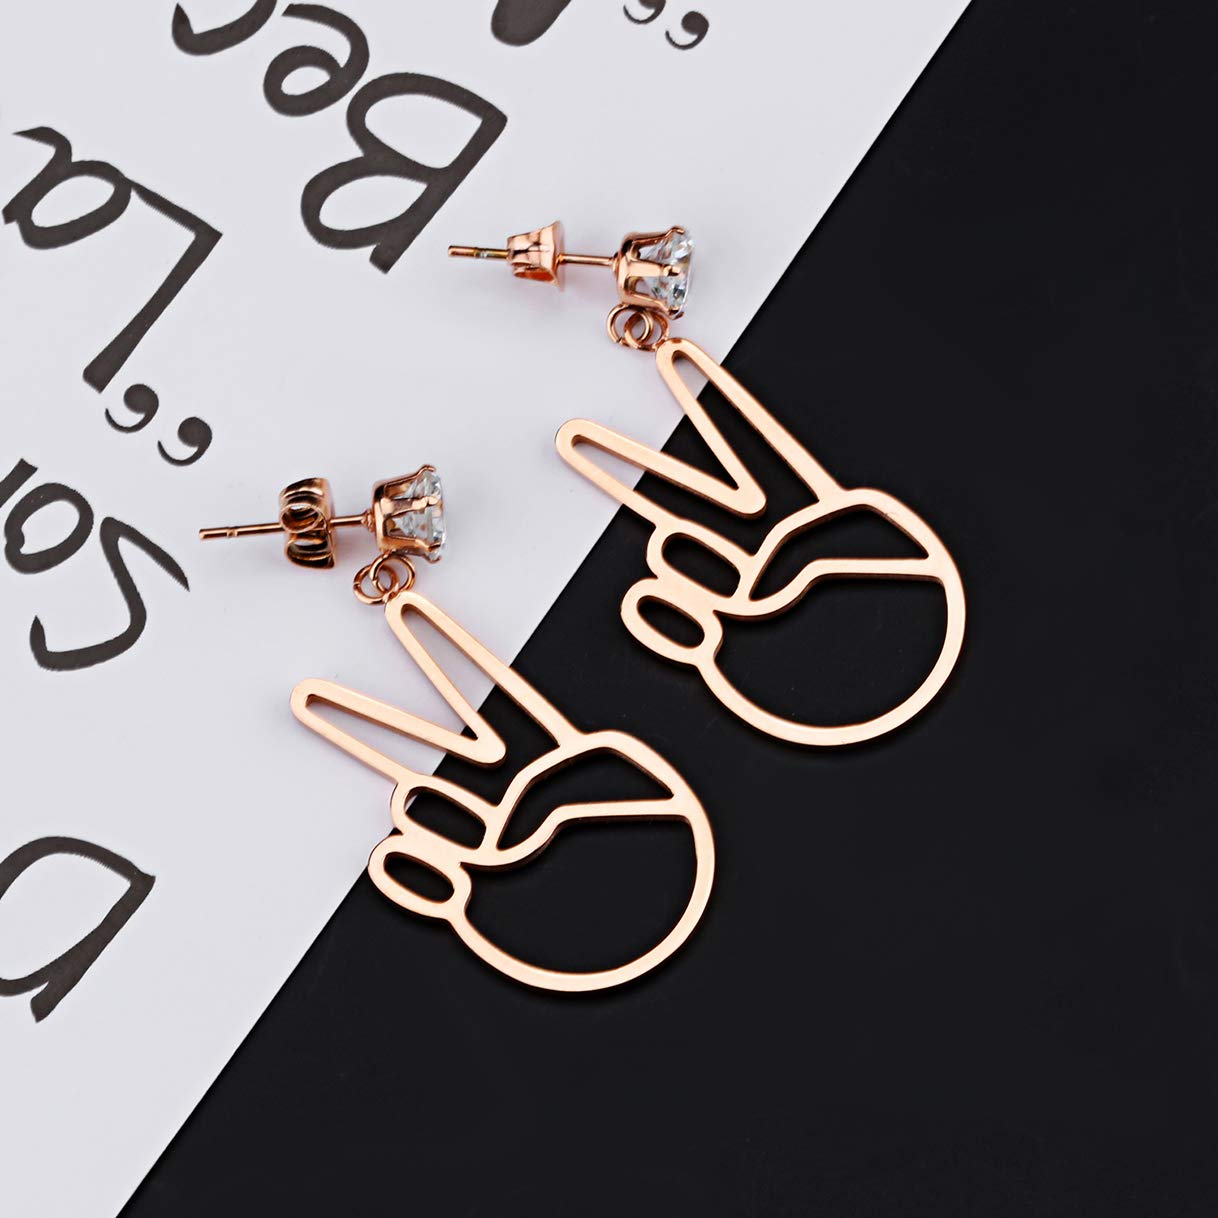 CHARMFAME Rose Gold Plated Stainless Steel Hand Gesture Dangle Earrings Cubic Zirconia Drop Earrings for Women /& Girls